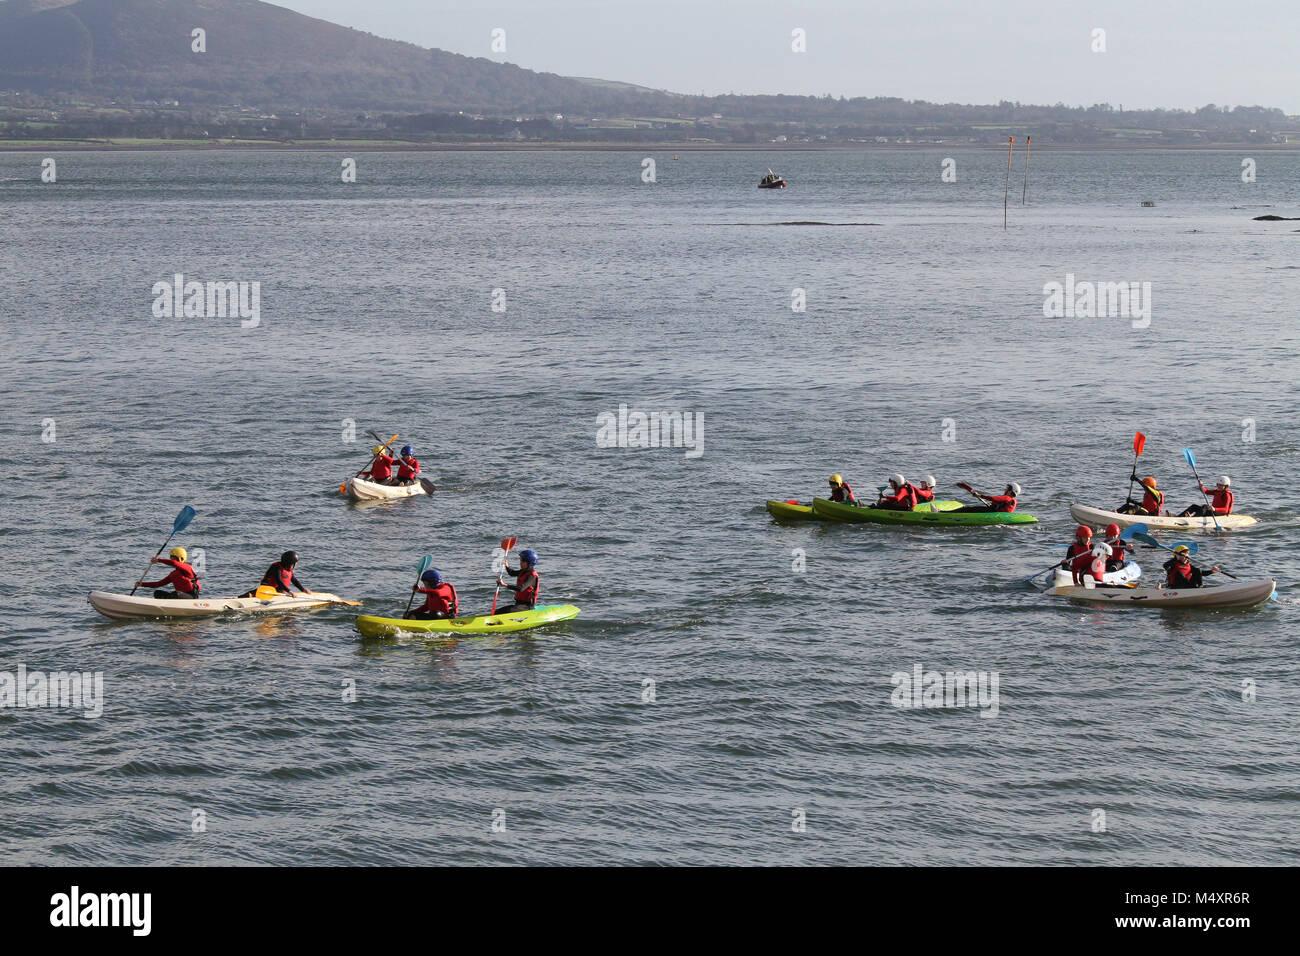 Young people kayaking on Carlingford Lough. at Carlingford, County Louth. - Stock Image